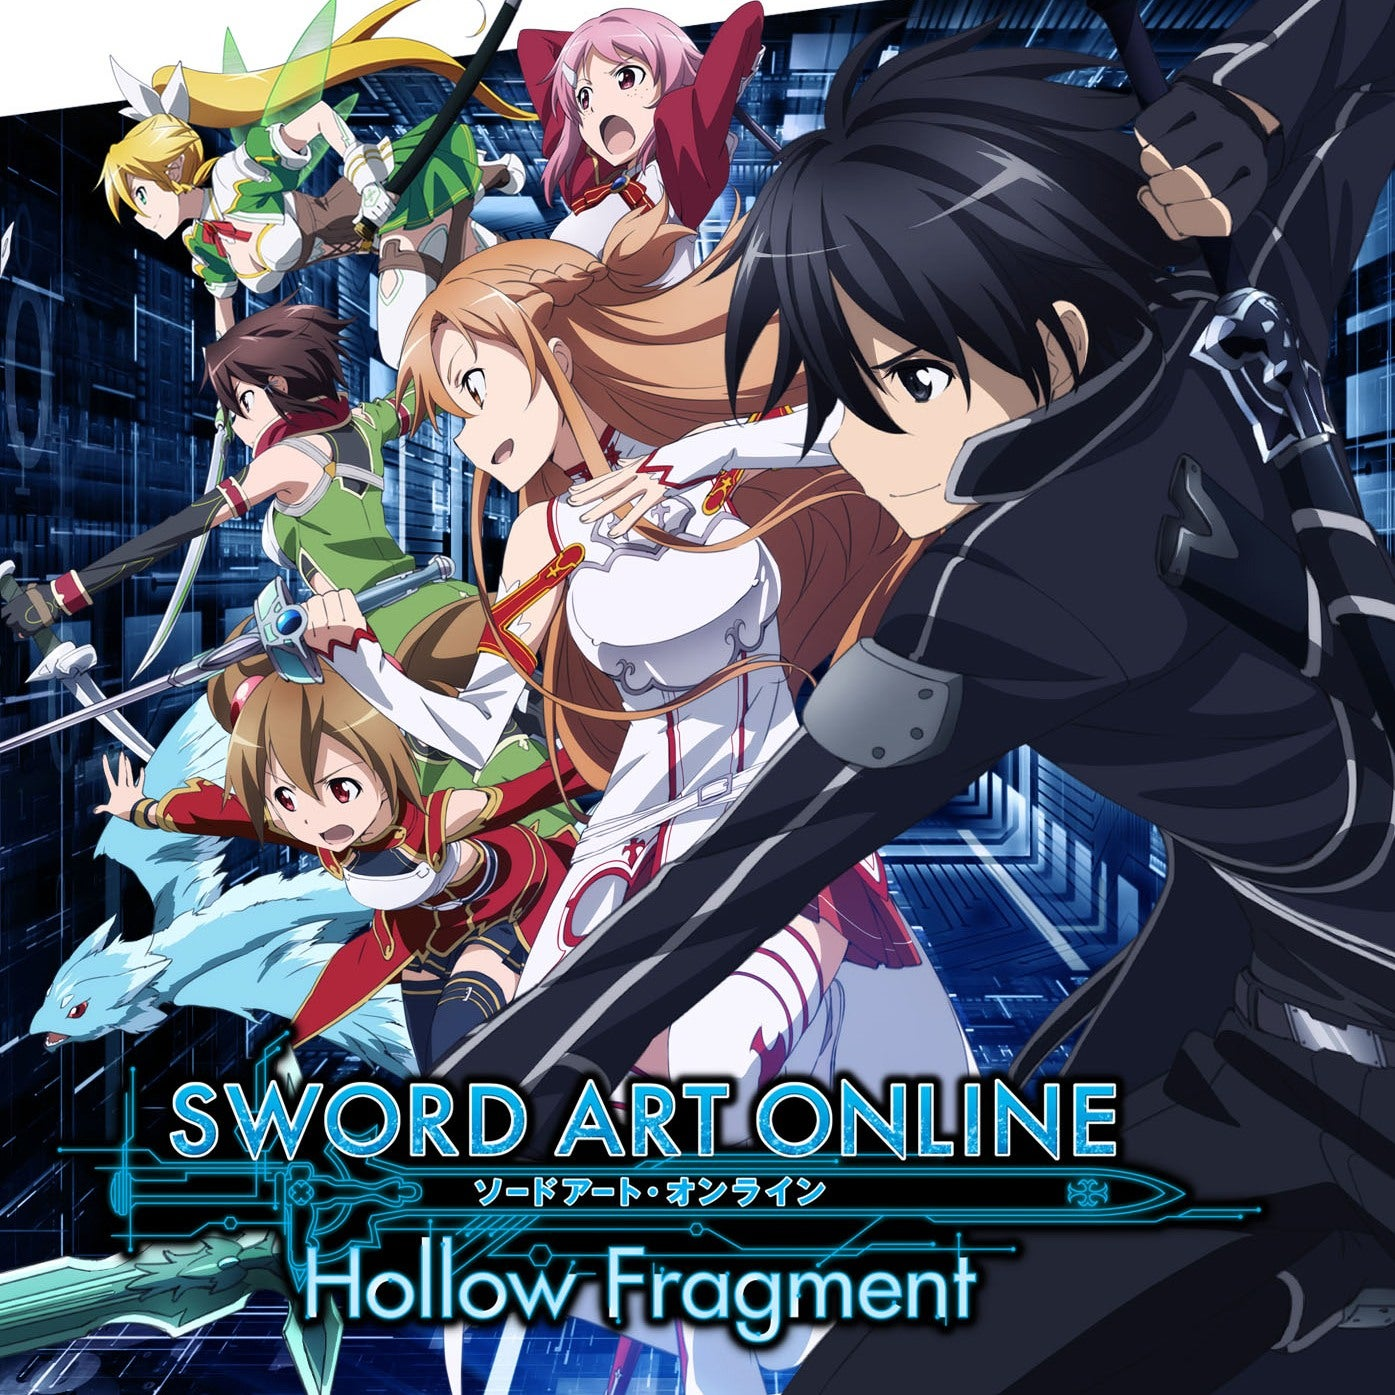 https://i1.wp.com/assets2.ignimgs.com/2014/04/25/sword-art-online-hollow-fragment-buttonjpg-9aaa64.jpg